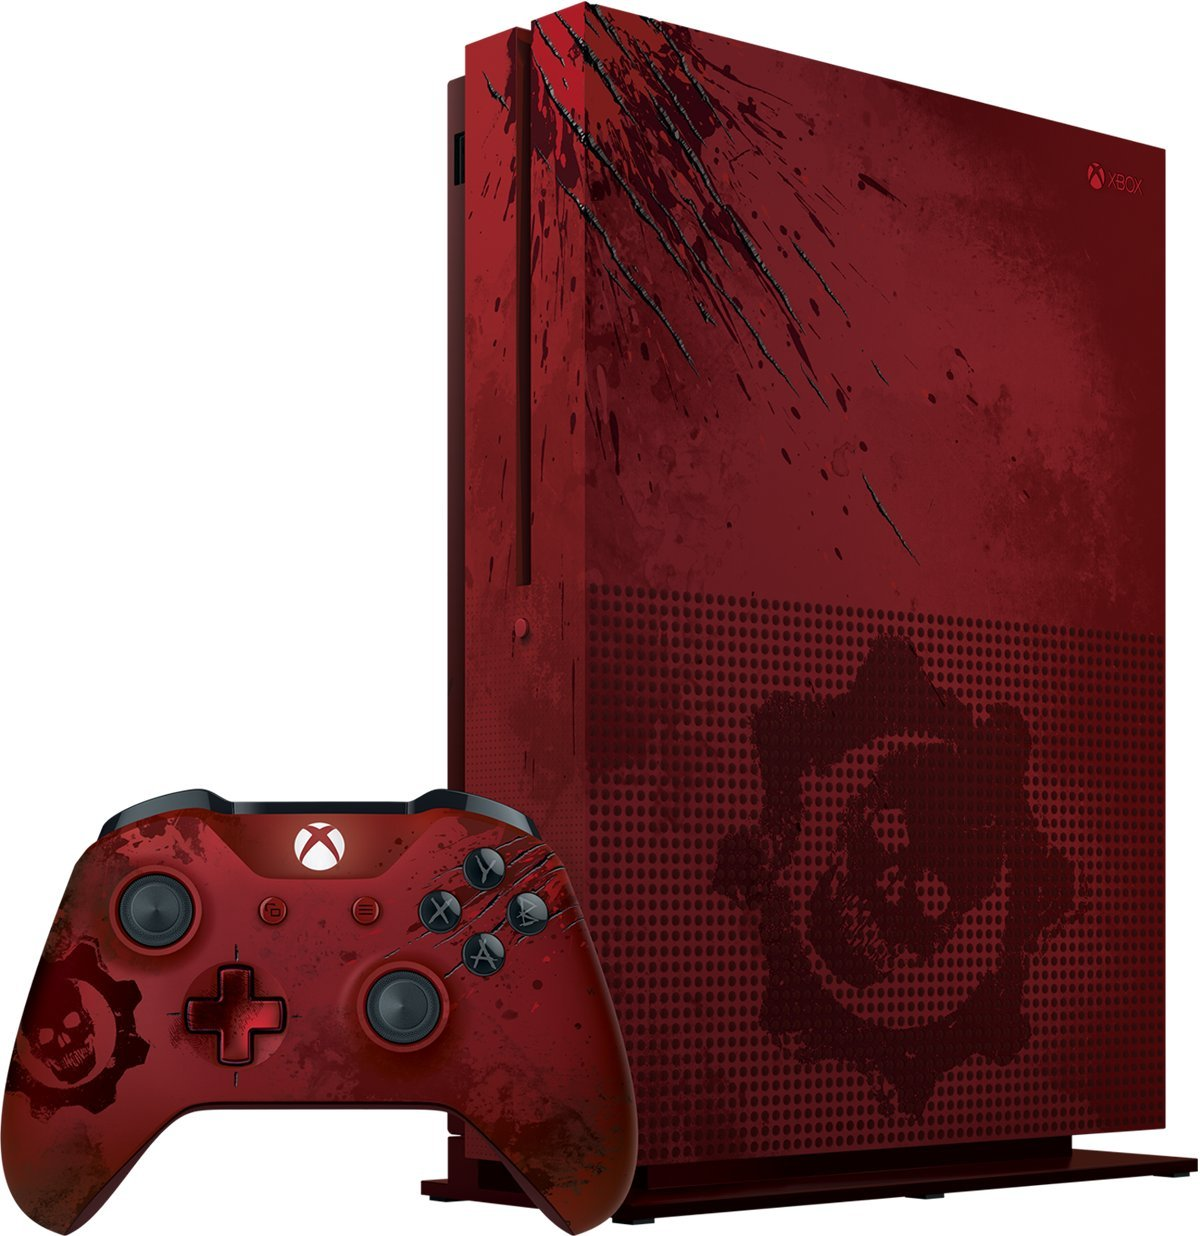 Quelle: Microsoft - Xbox One S 2 TB Gears of War 4 Limited Edition